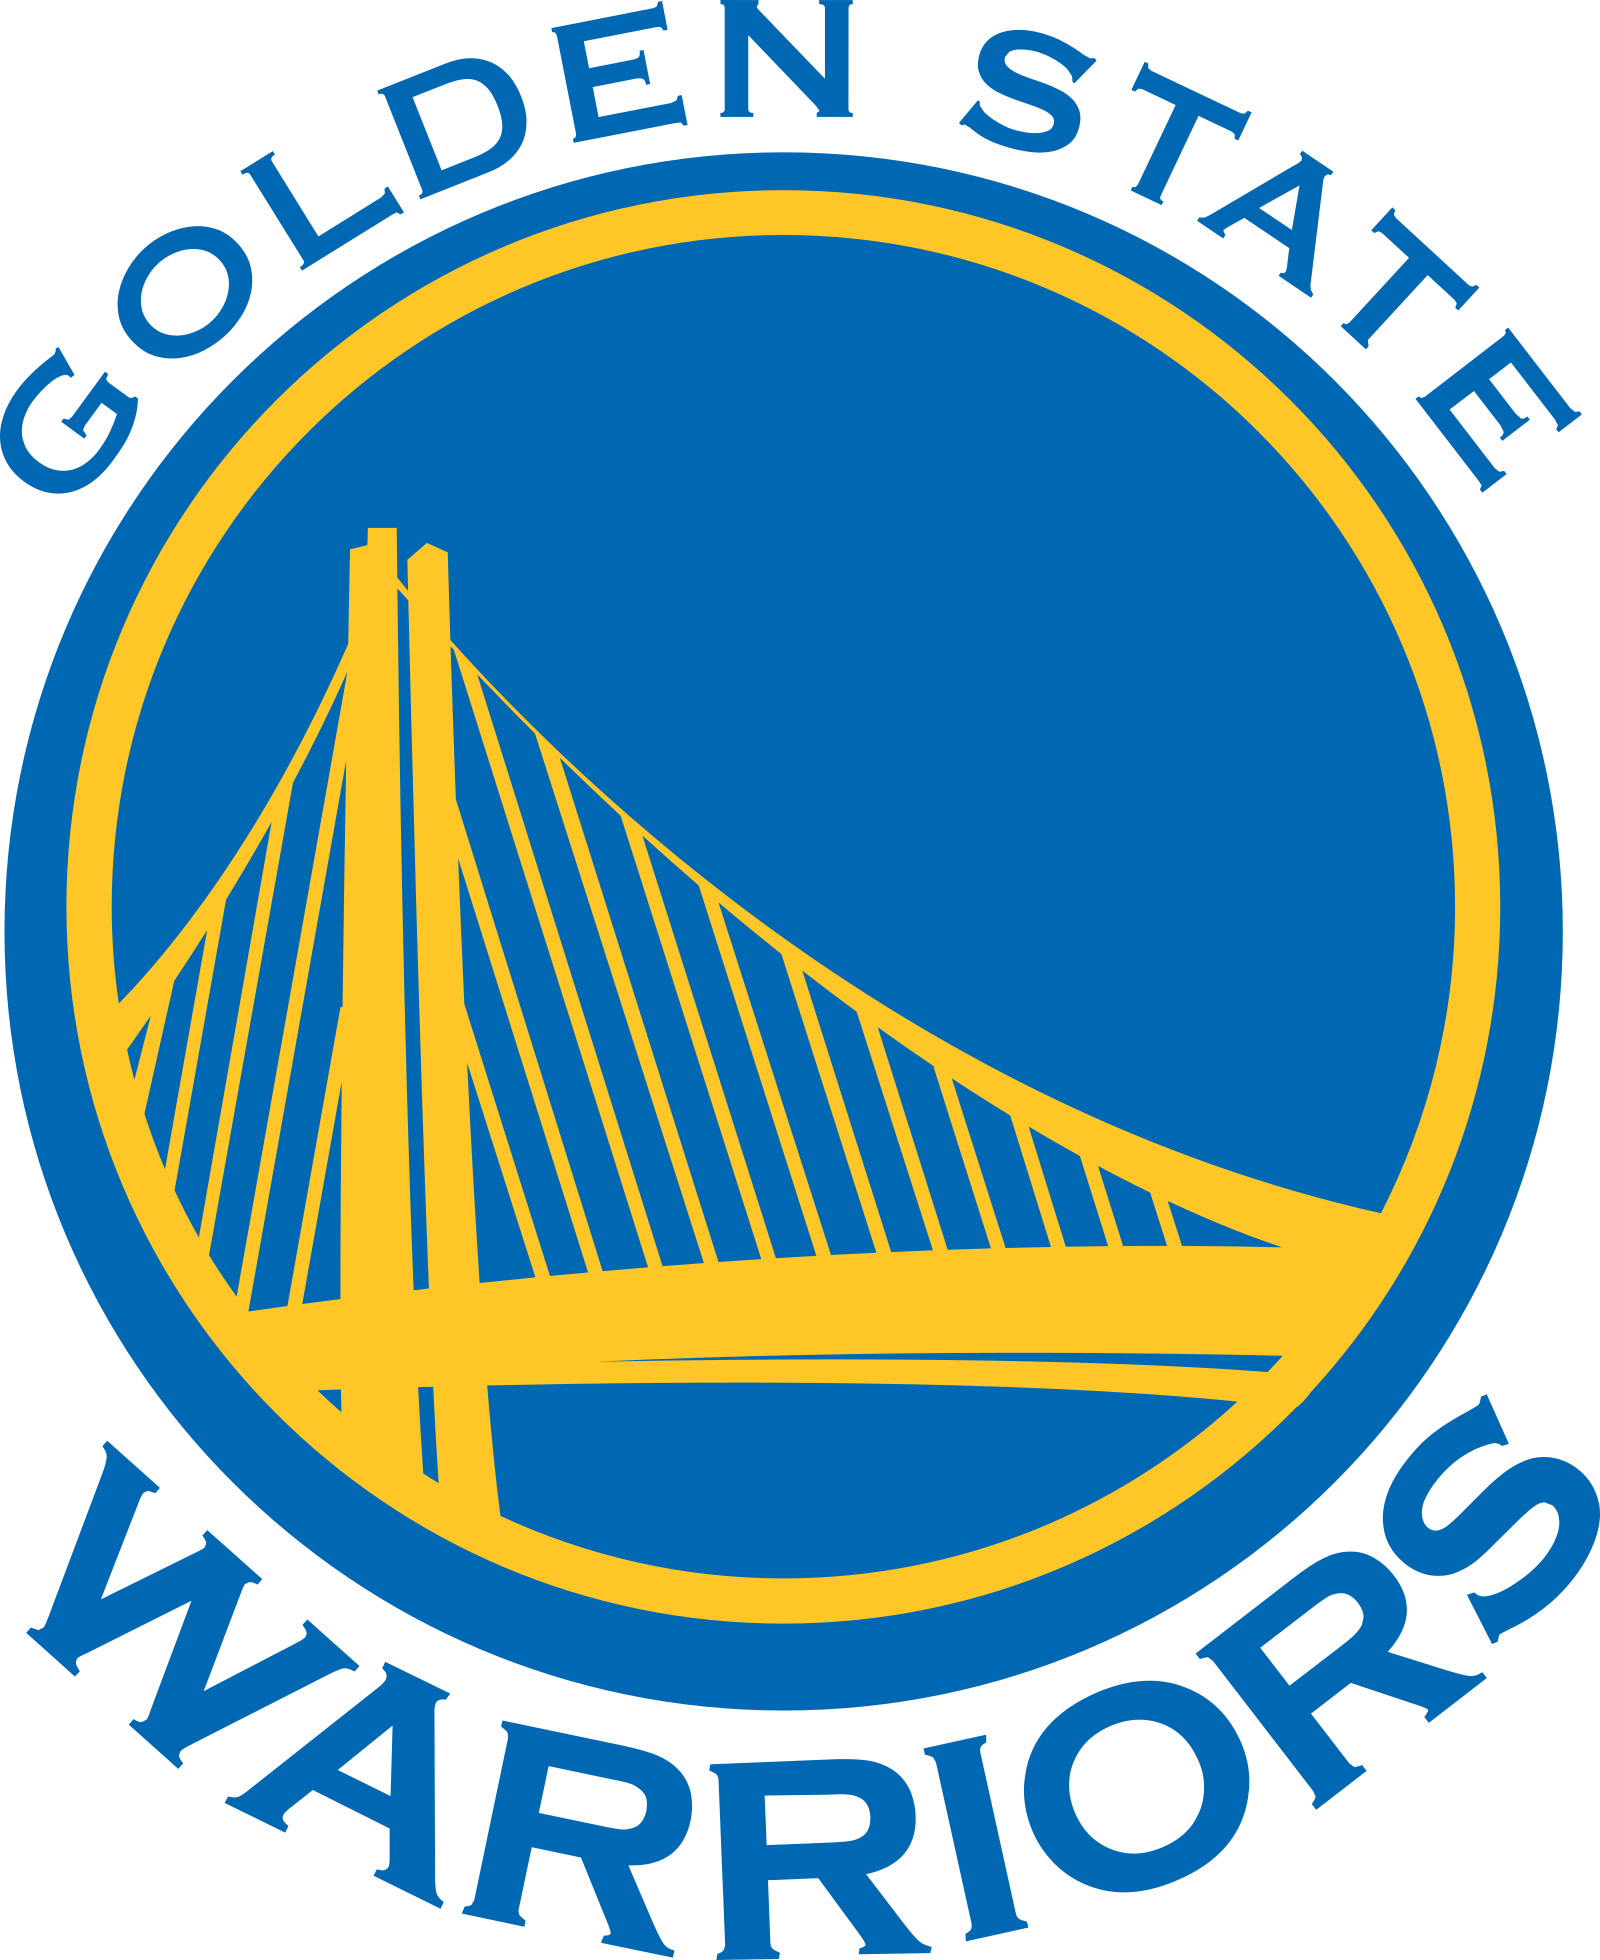 golden state warriors logo 2 - Golden State Warriors Logo